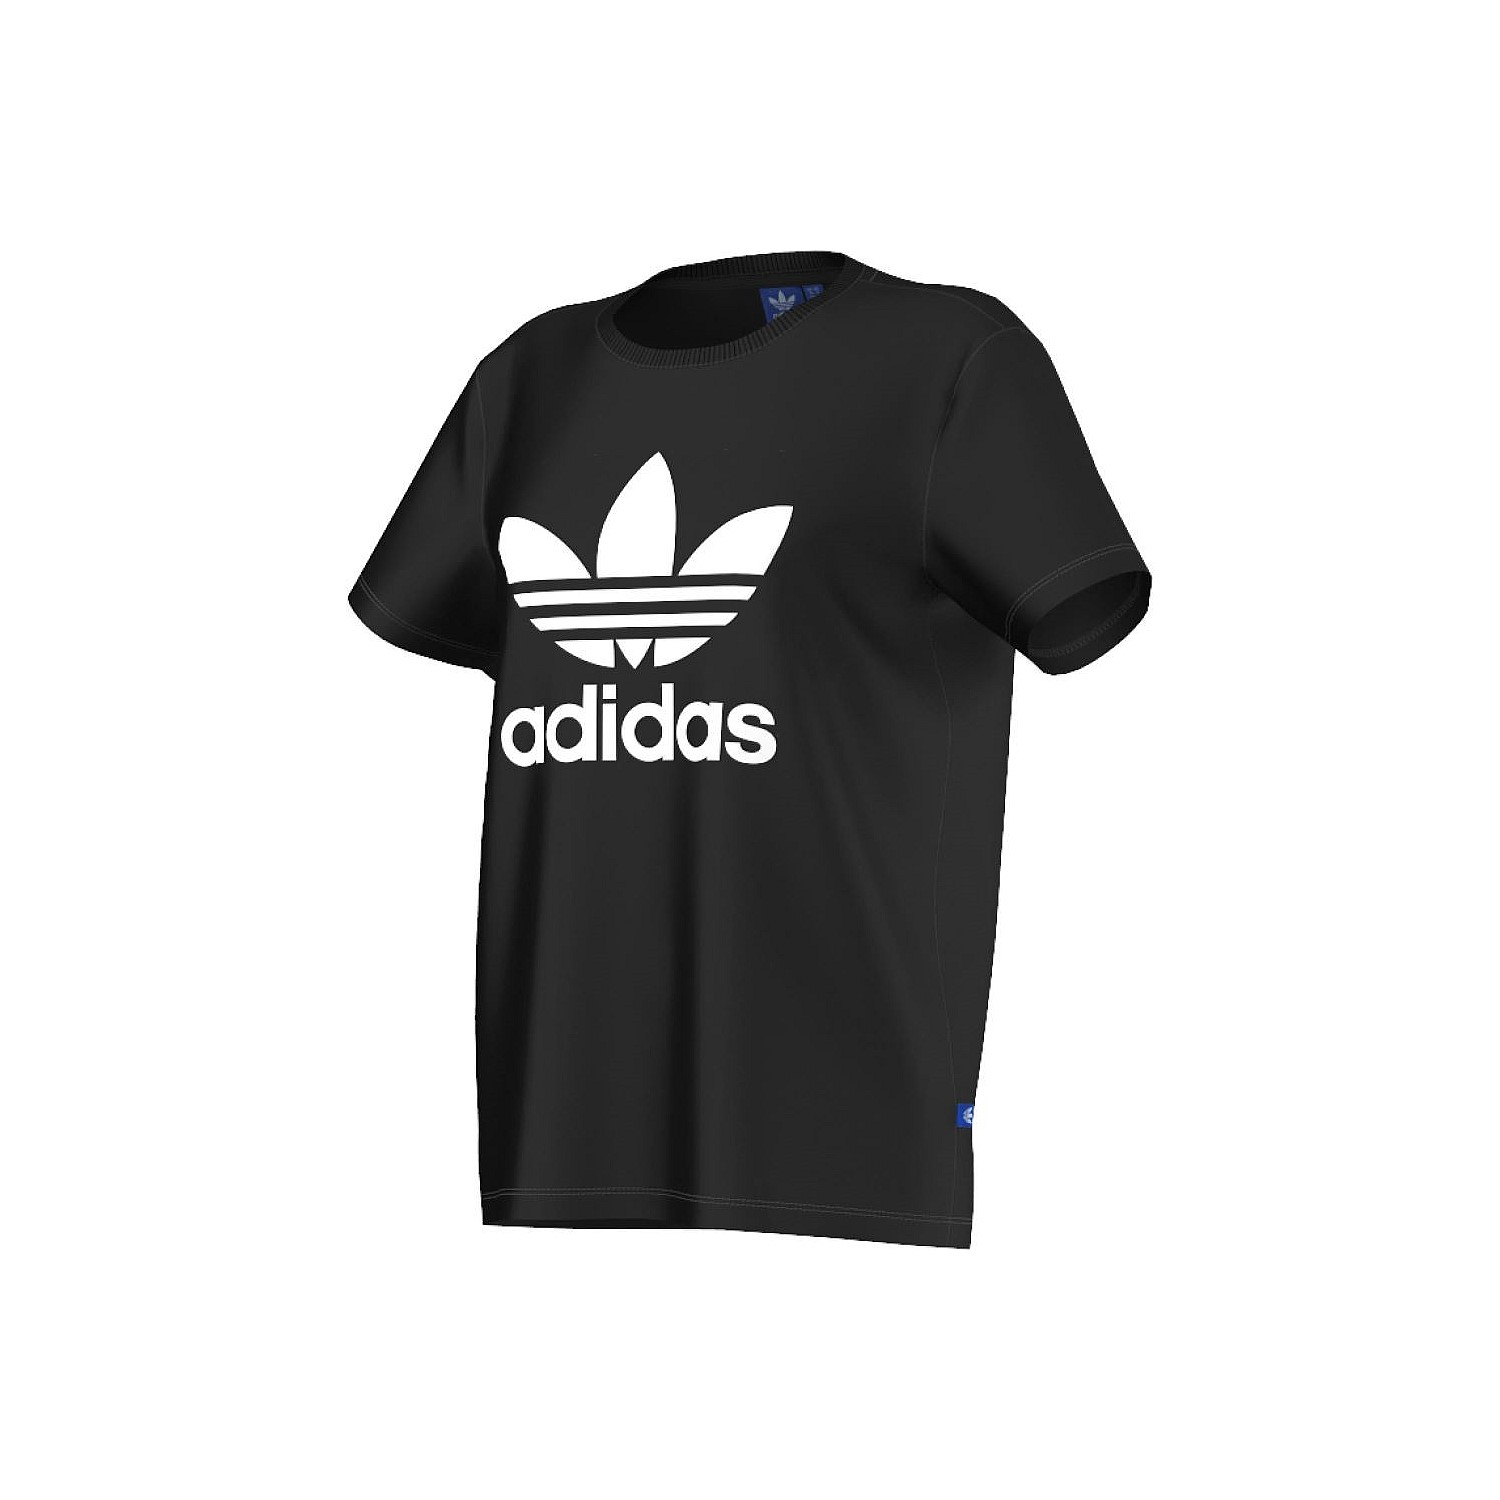 70cf2705 adidas Originals | Shop adidas Originals Clothing, Footwear and Accessories  Online | Stirling Sports - Boyfriend Trefoil Tee